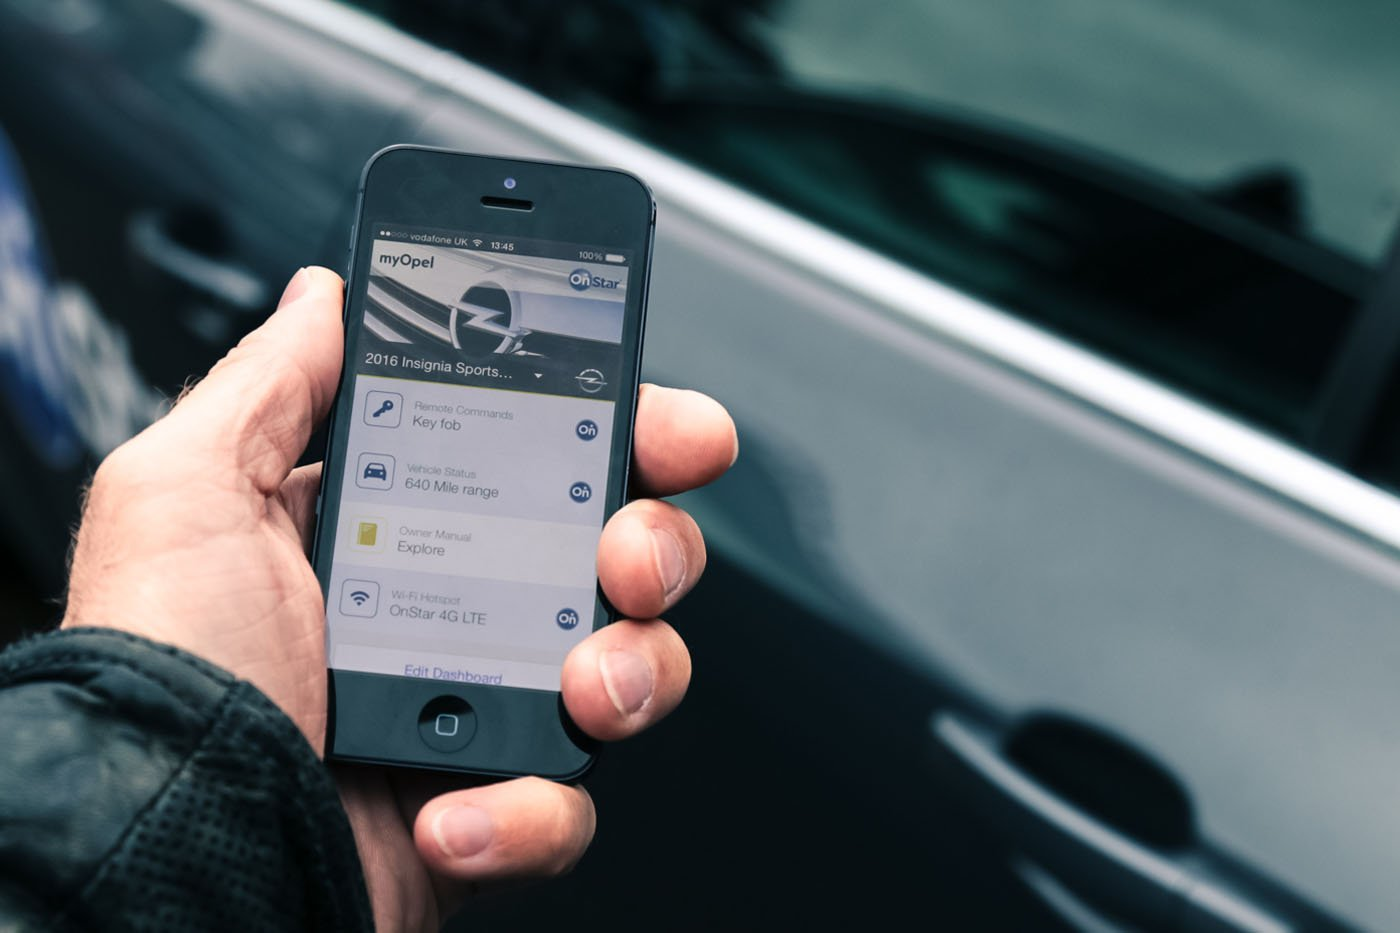 Opel Onstar Humanity By Pushing A Button Uberding Dein